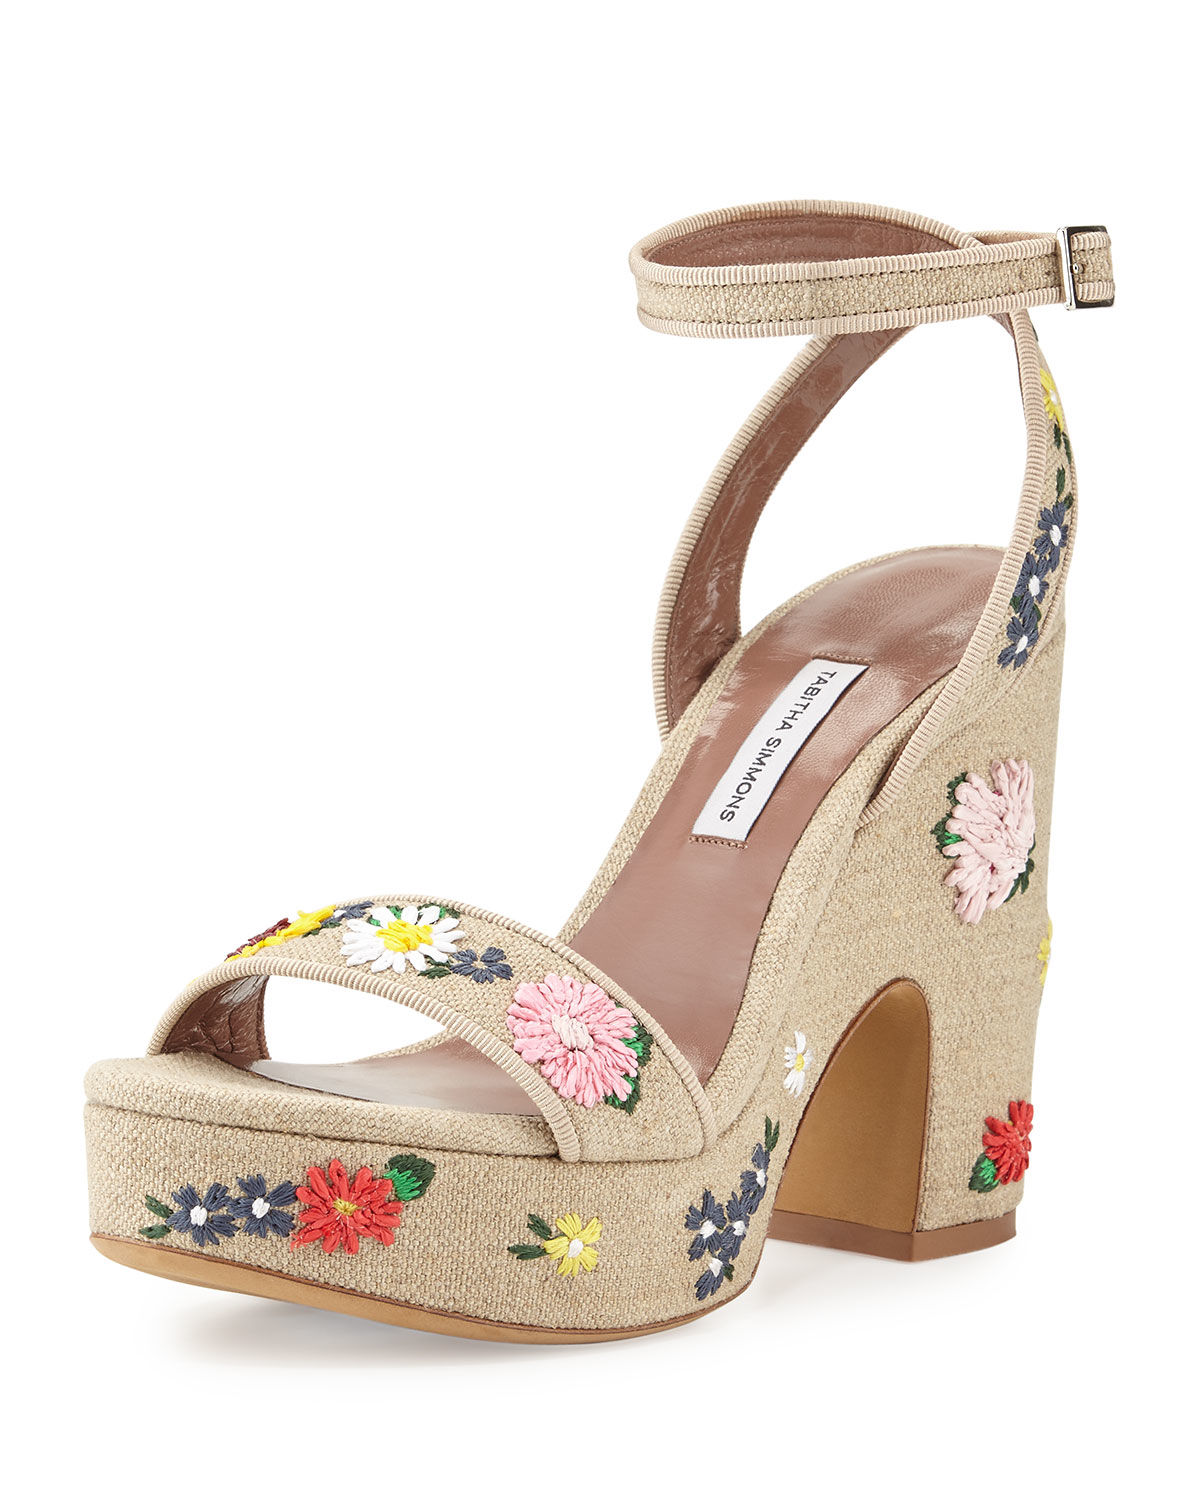 Tabitha Simmons Embroidered Multistrap Sandals buy cheap 100% original buy cheap explore cheap sale Cheapest sale with mastercard cqnTpMPnC